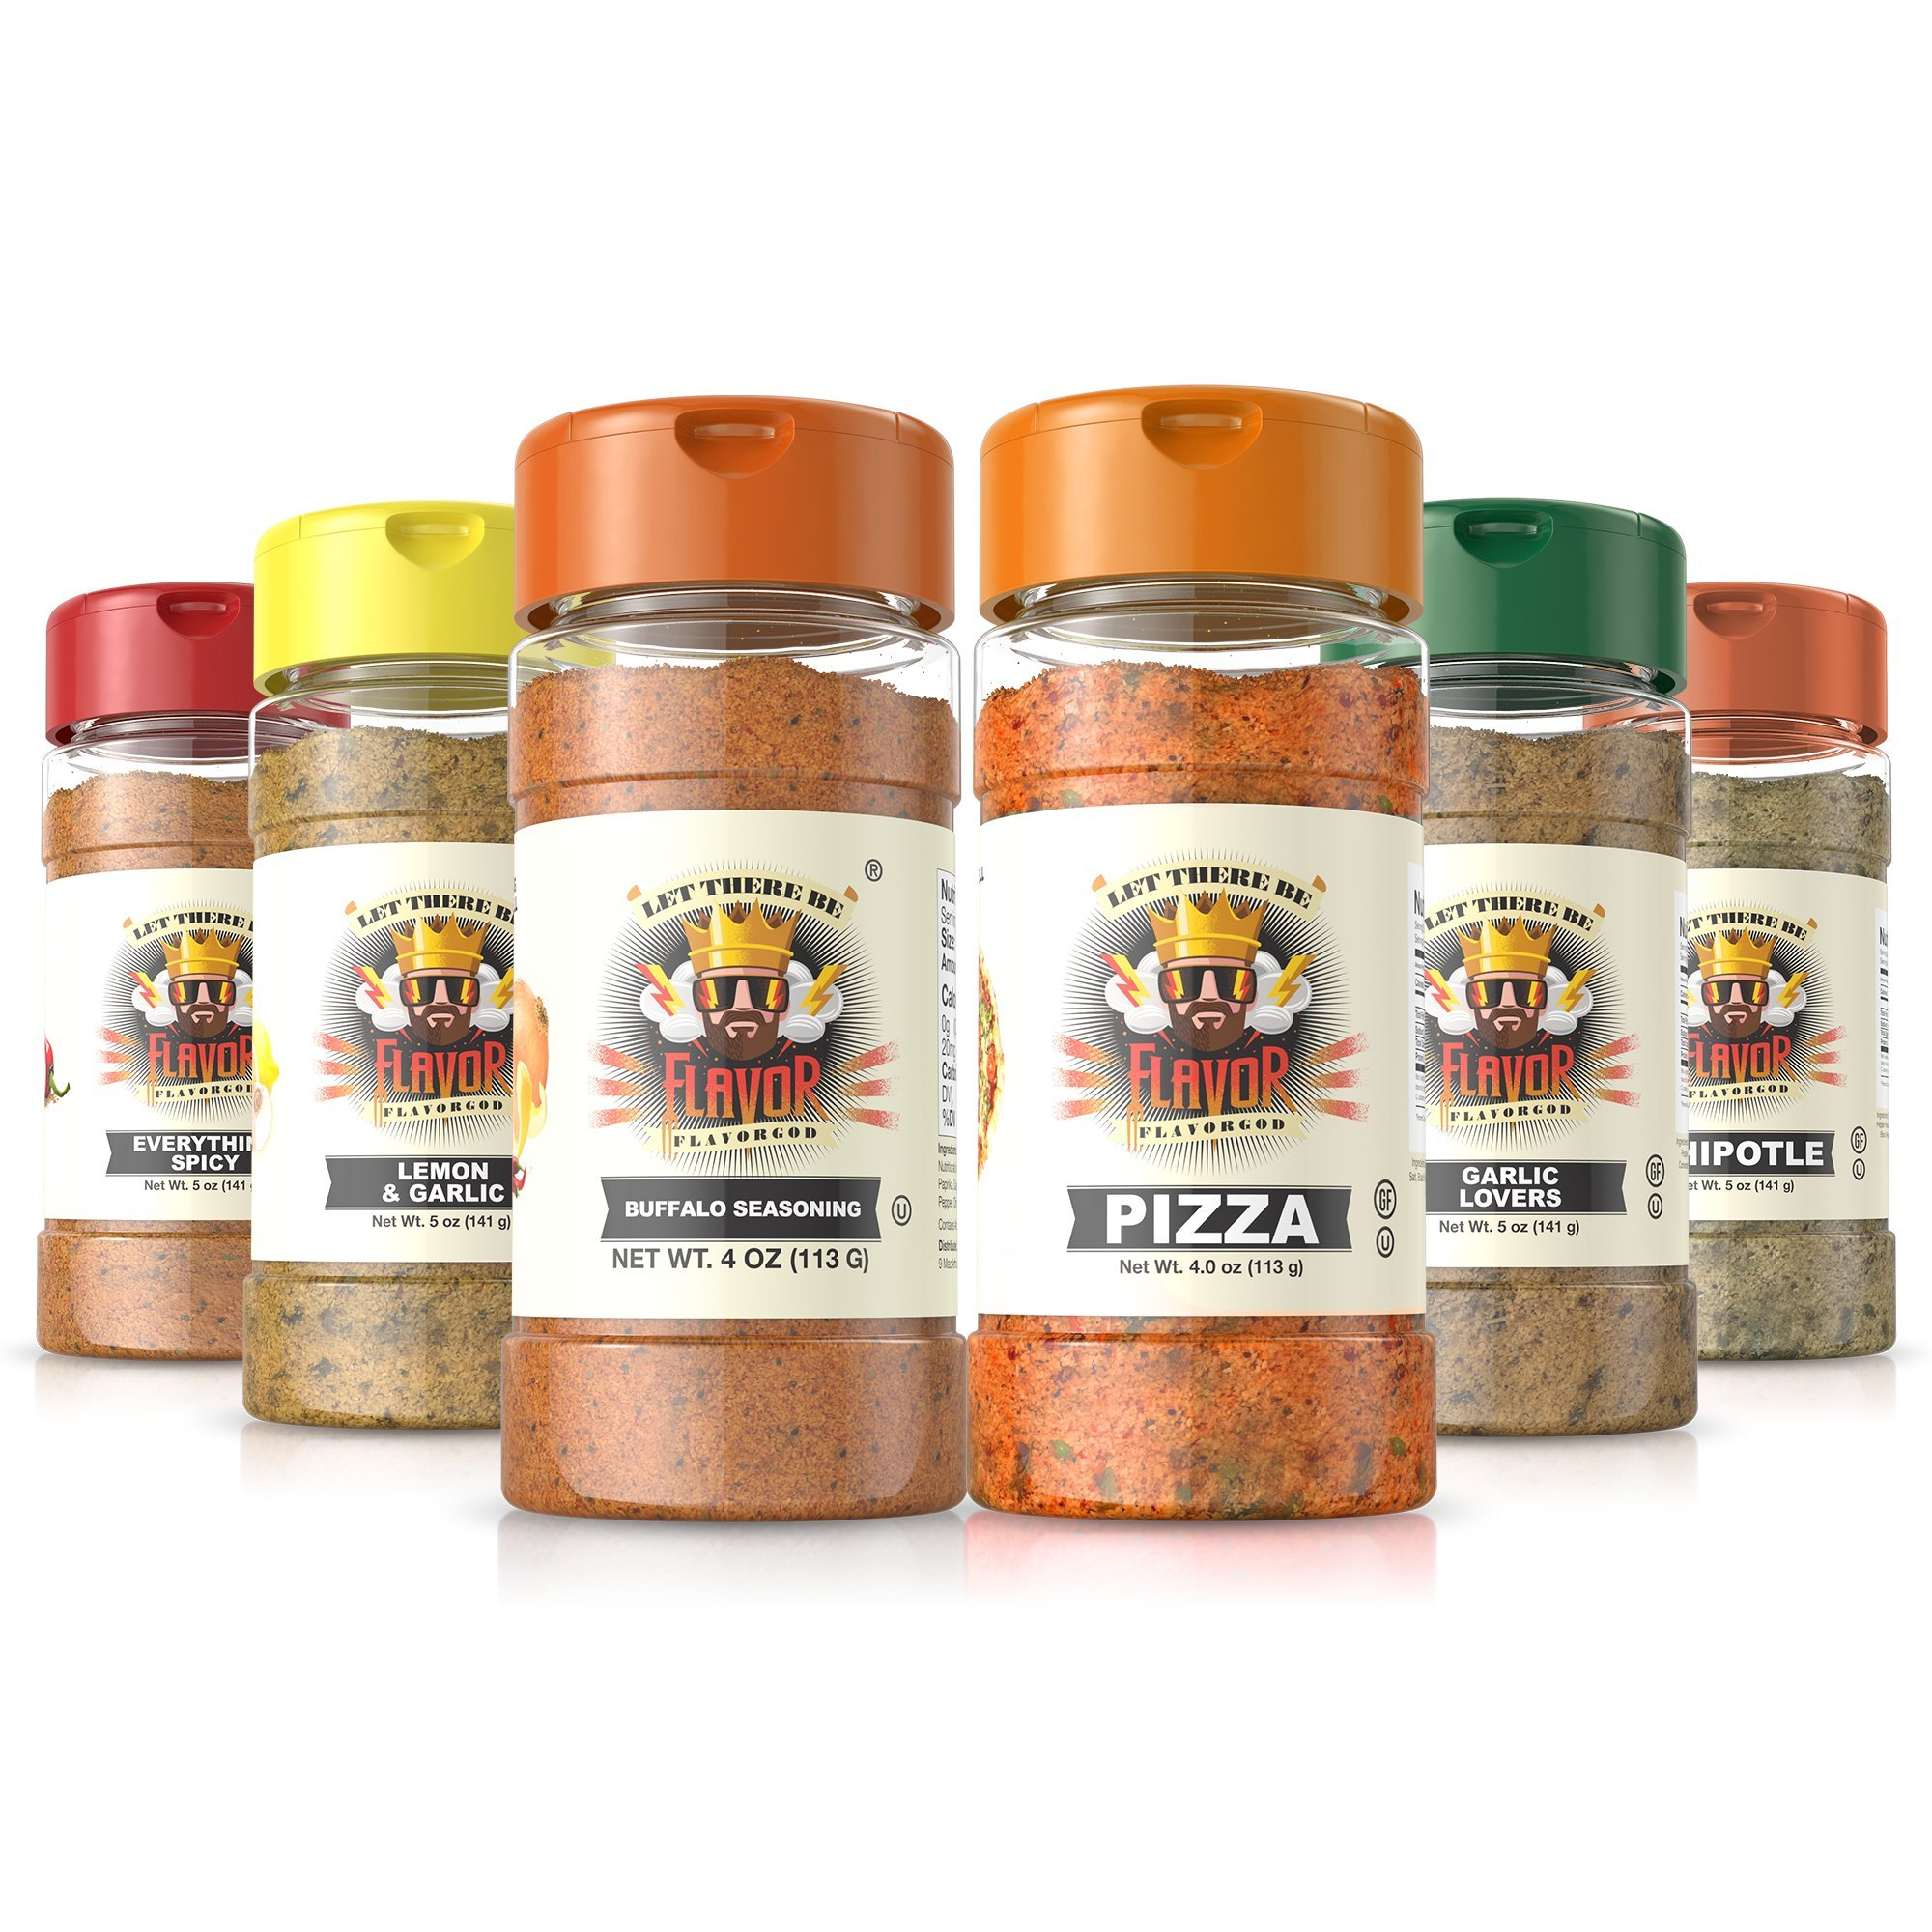 Flavor God Seasonings - Meal Prep Combo - Everything Spicy, Garlic Lovers, Lemon Garlic, Pizza, Buffalo, and Chipotle (Gluten Free, GMO Free, MSG Free, Low Sodium, Paleo Friendly) by Flavor God (Image #1)